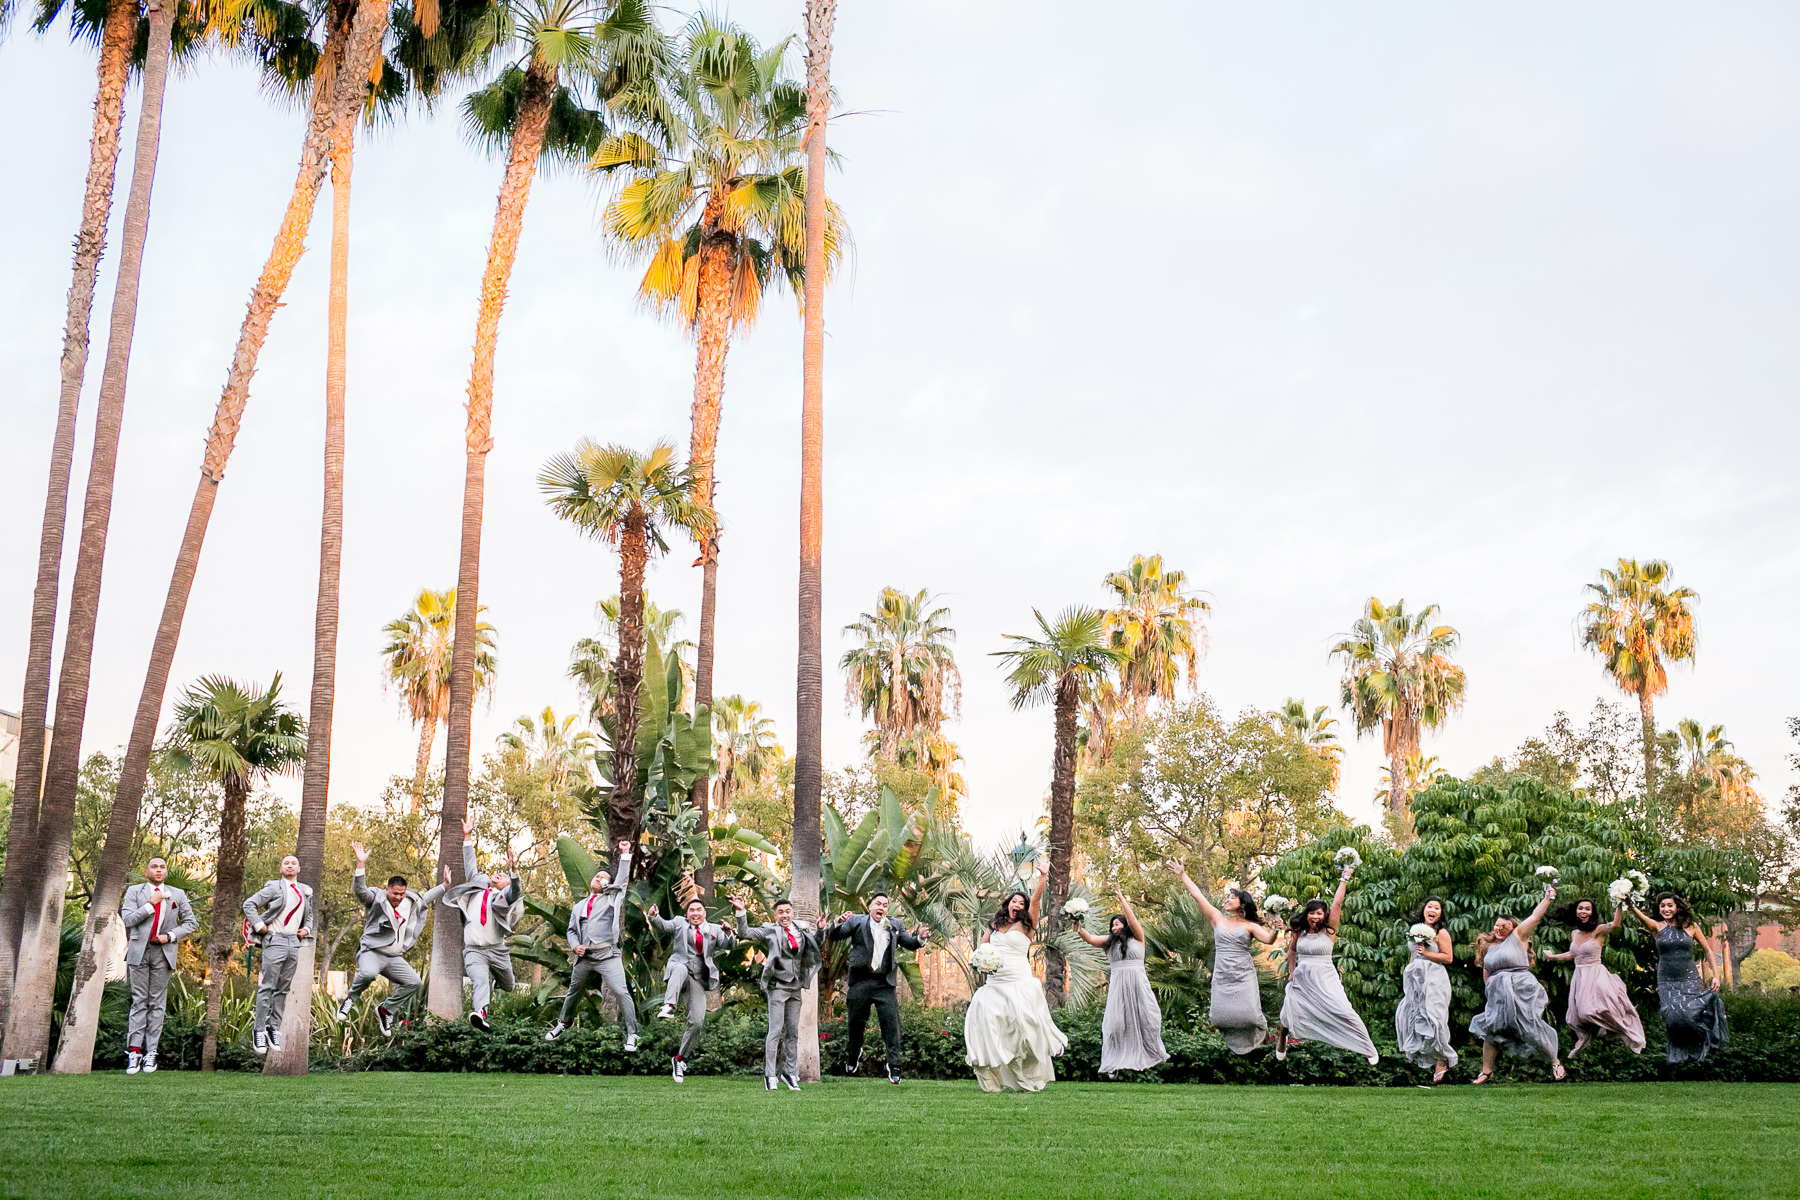 Fun Jumping Shot Of The Bridal Party On Disneyland Hotel Lawn Wedding